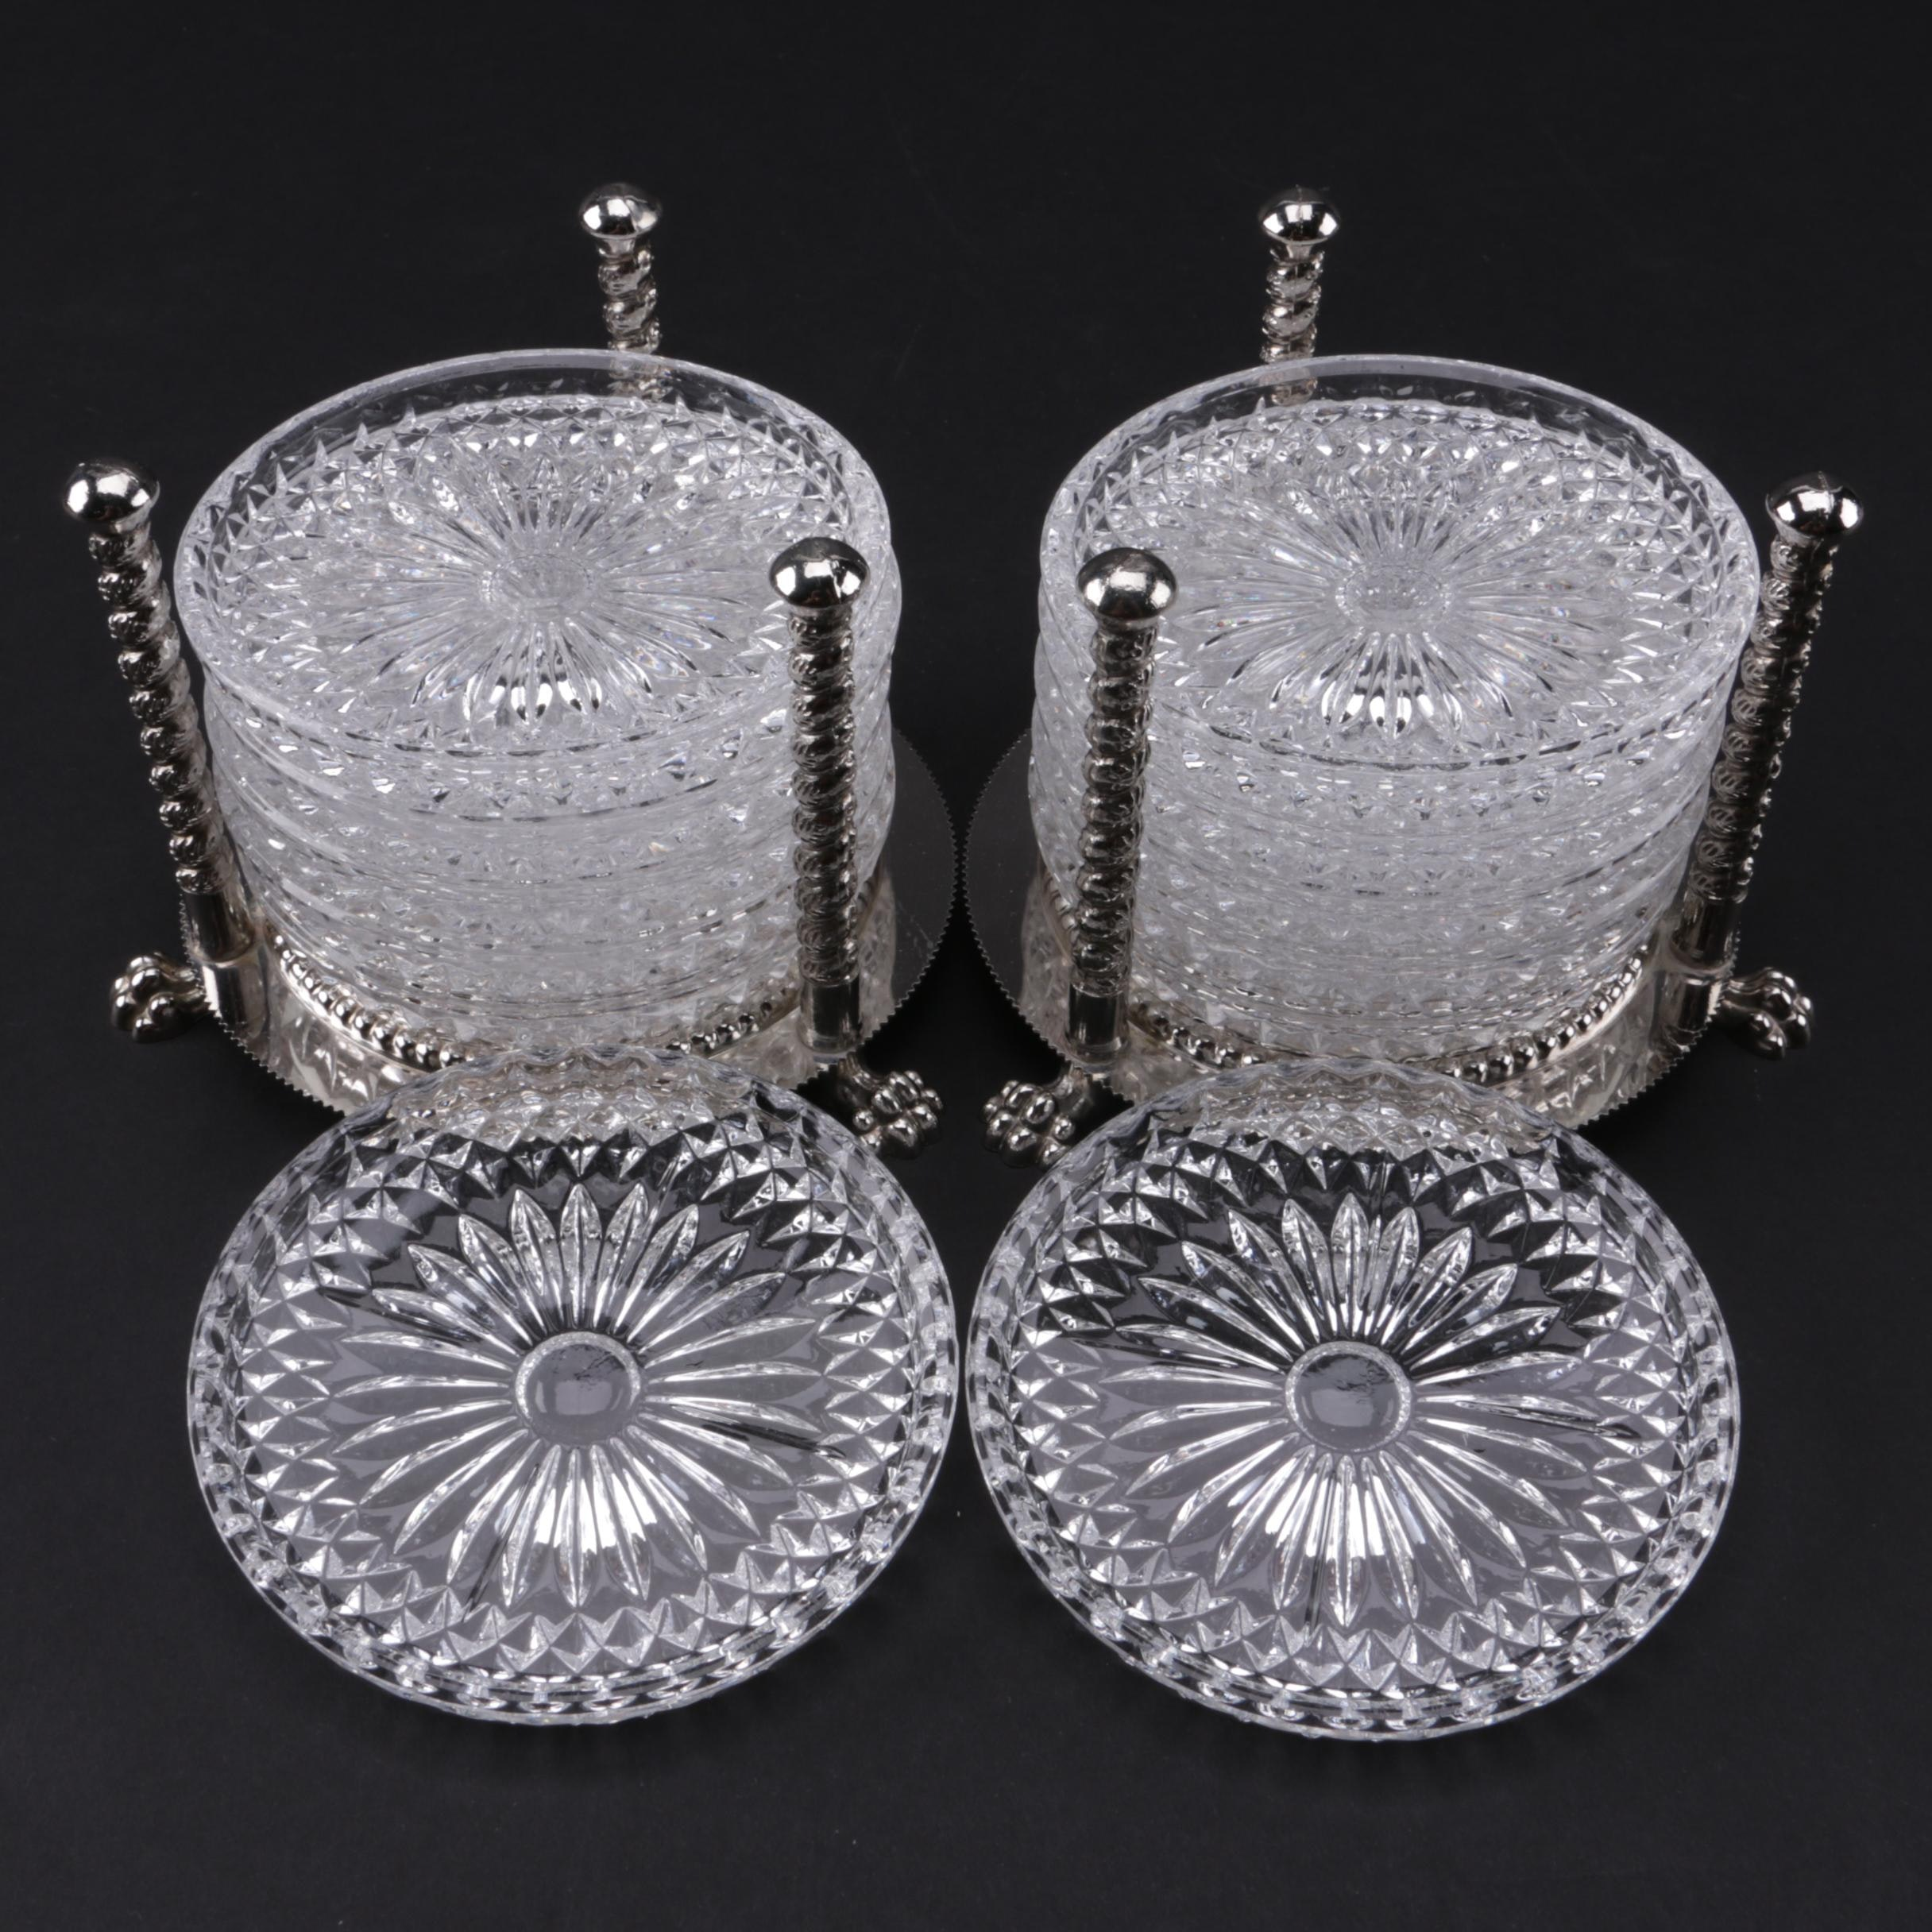 Vintage F.B. Rogers Crystal Coaster Sets with Silver Plate Holders